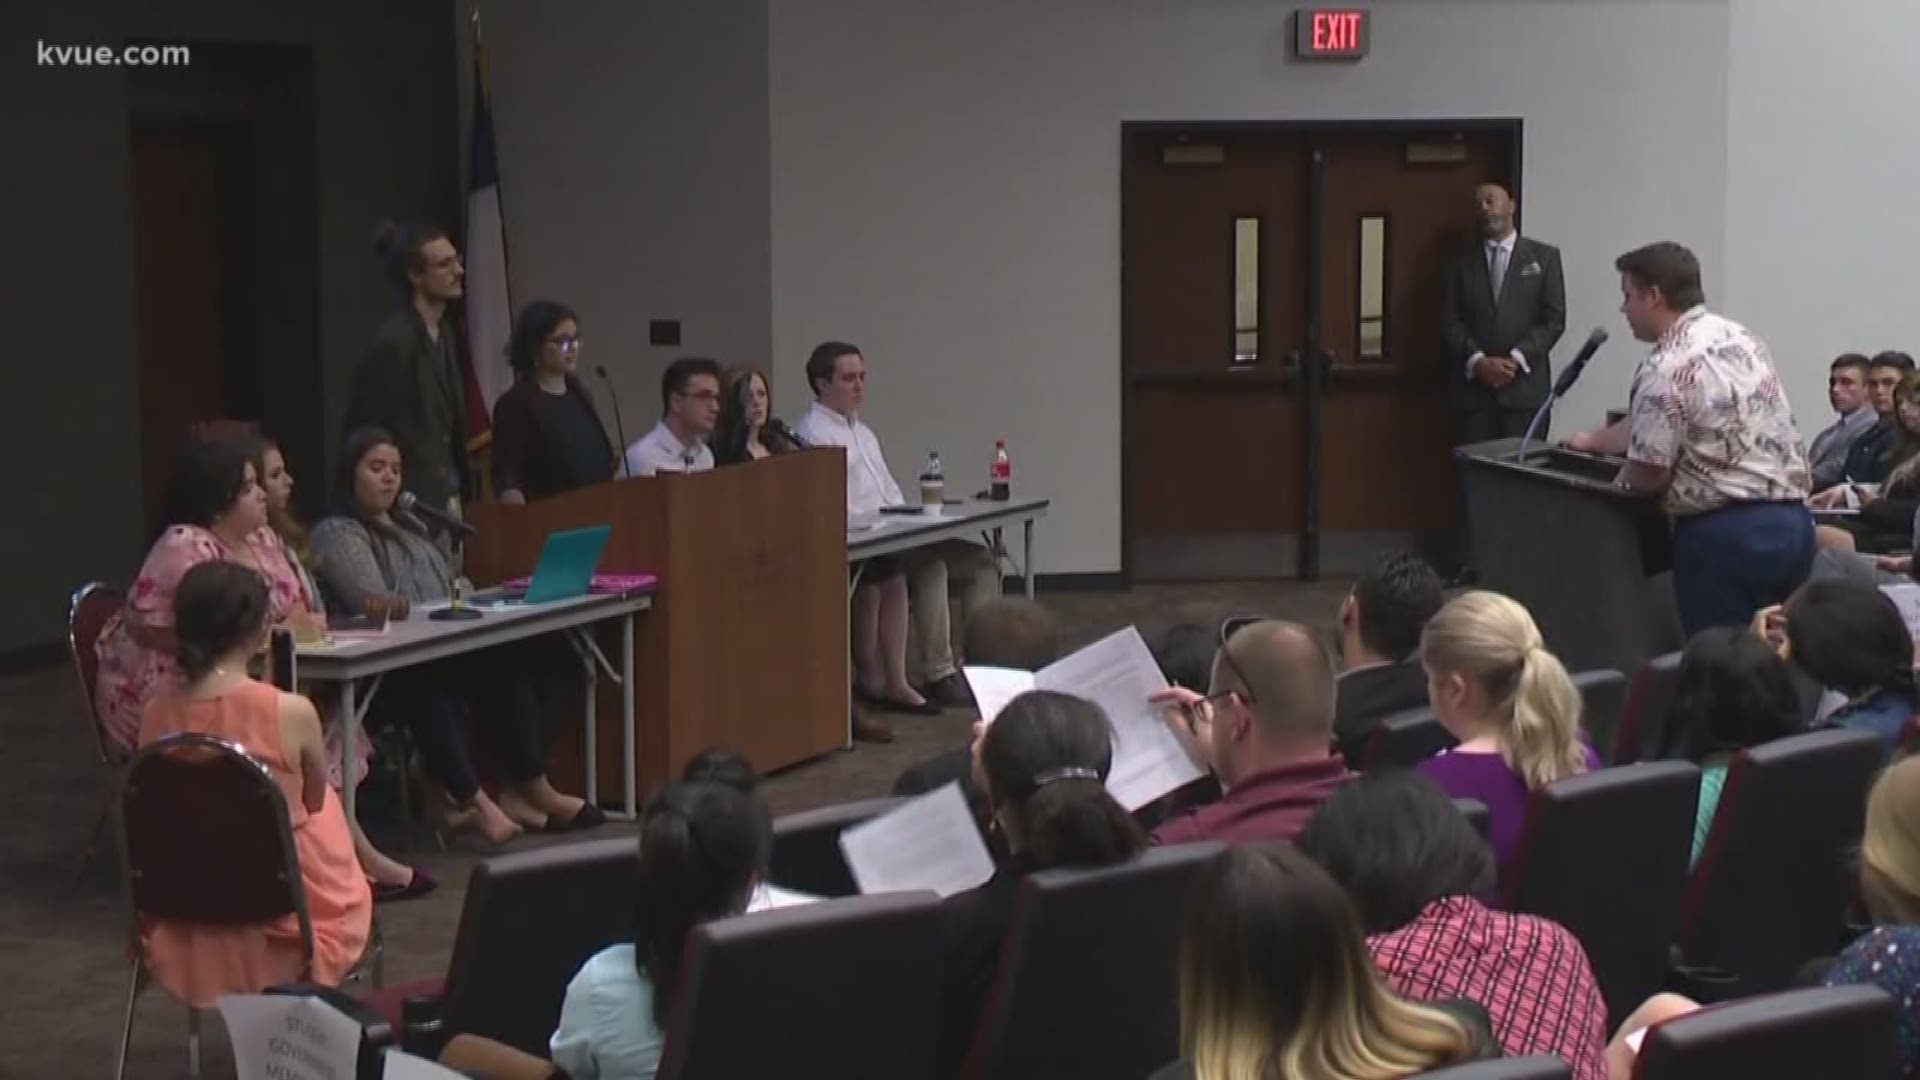 Texas State Student President Connor Clegg Impeached For